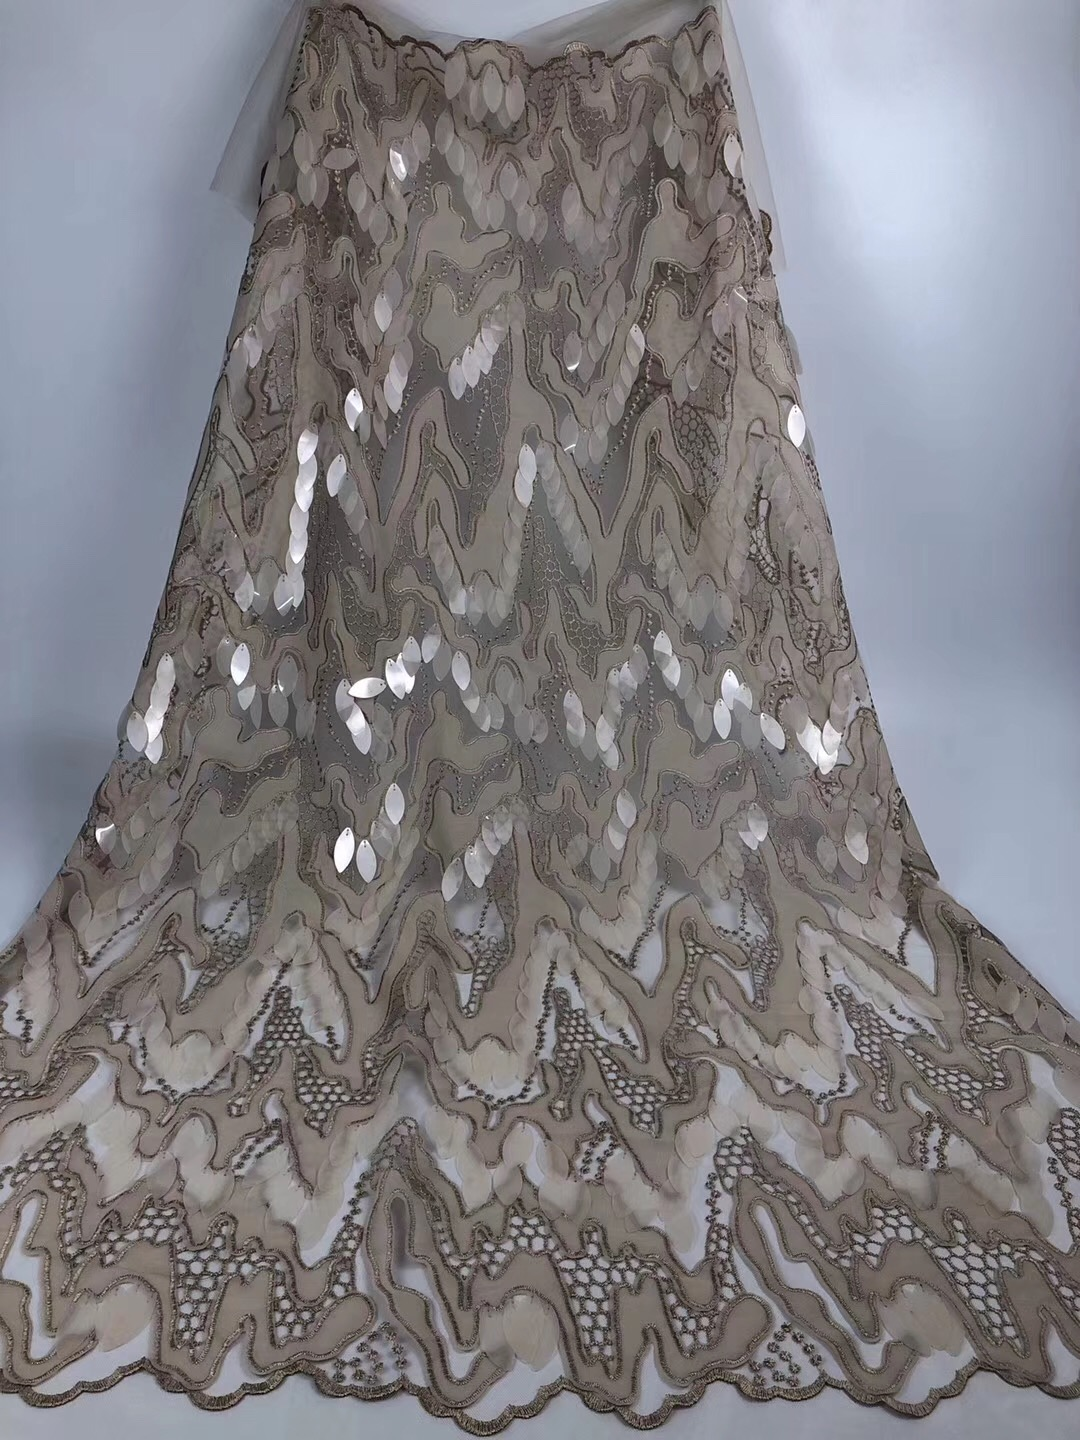 Beautifical african lace fabrics Fashion design 3d sequins net lace fabric for dress nigerian net lace fabric 5yards ML1N777Beautifical african lace fabrics Fashion design 3d sequins net lace fabric for dress nigerian net lace fabric 5yards ML1N777